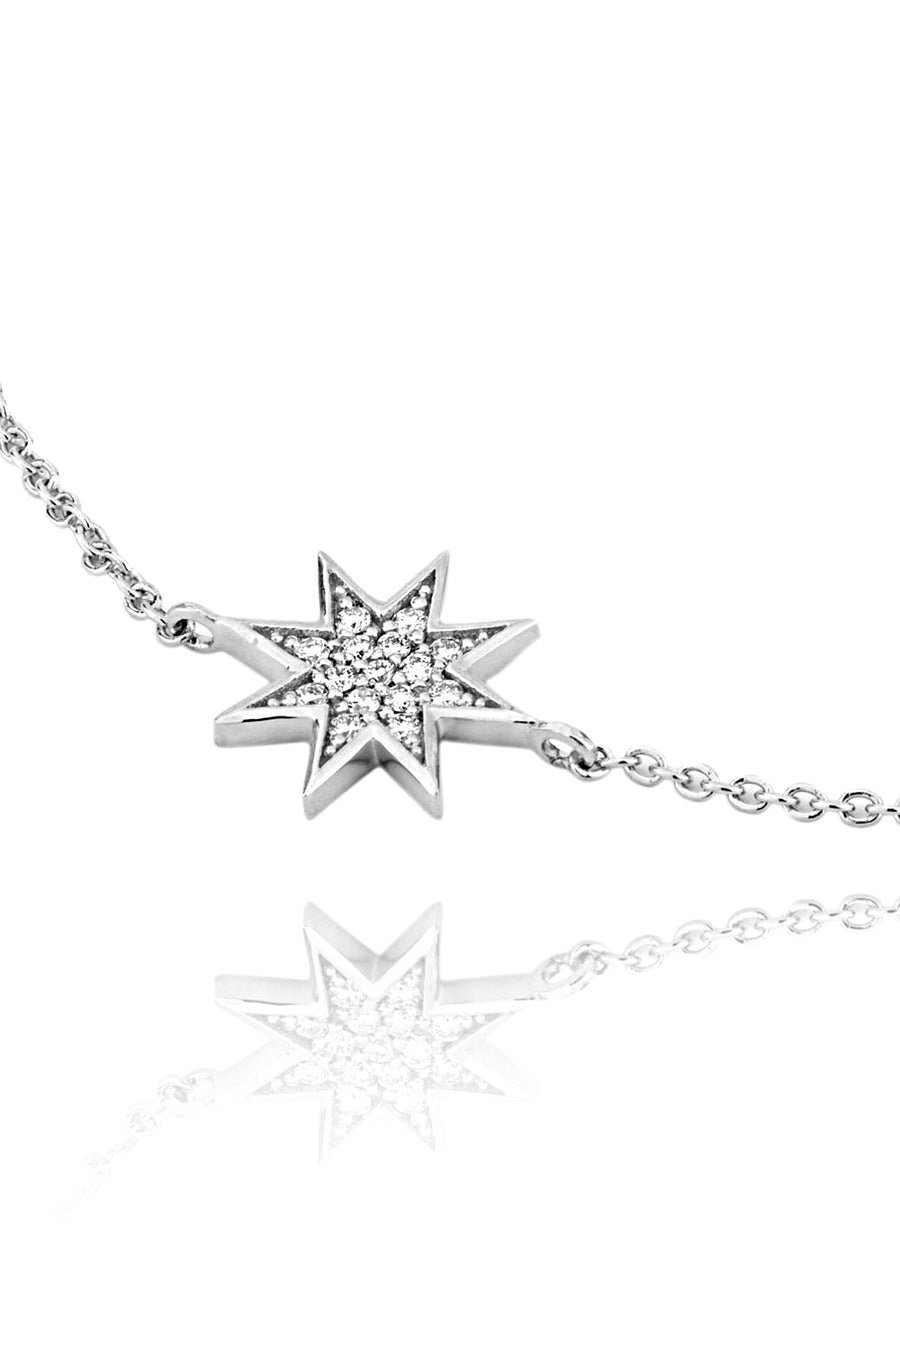 Silver and Diamond Star Bracelet